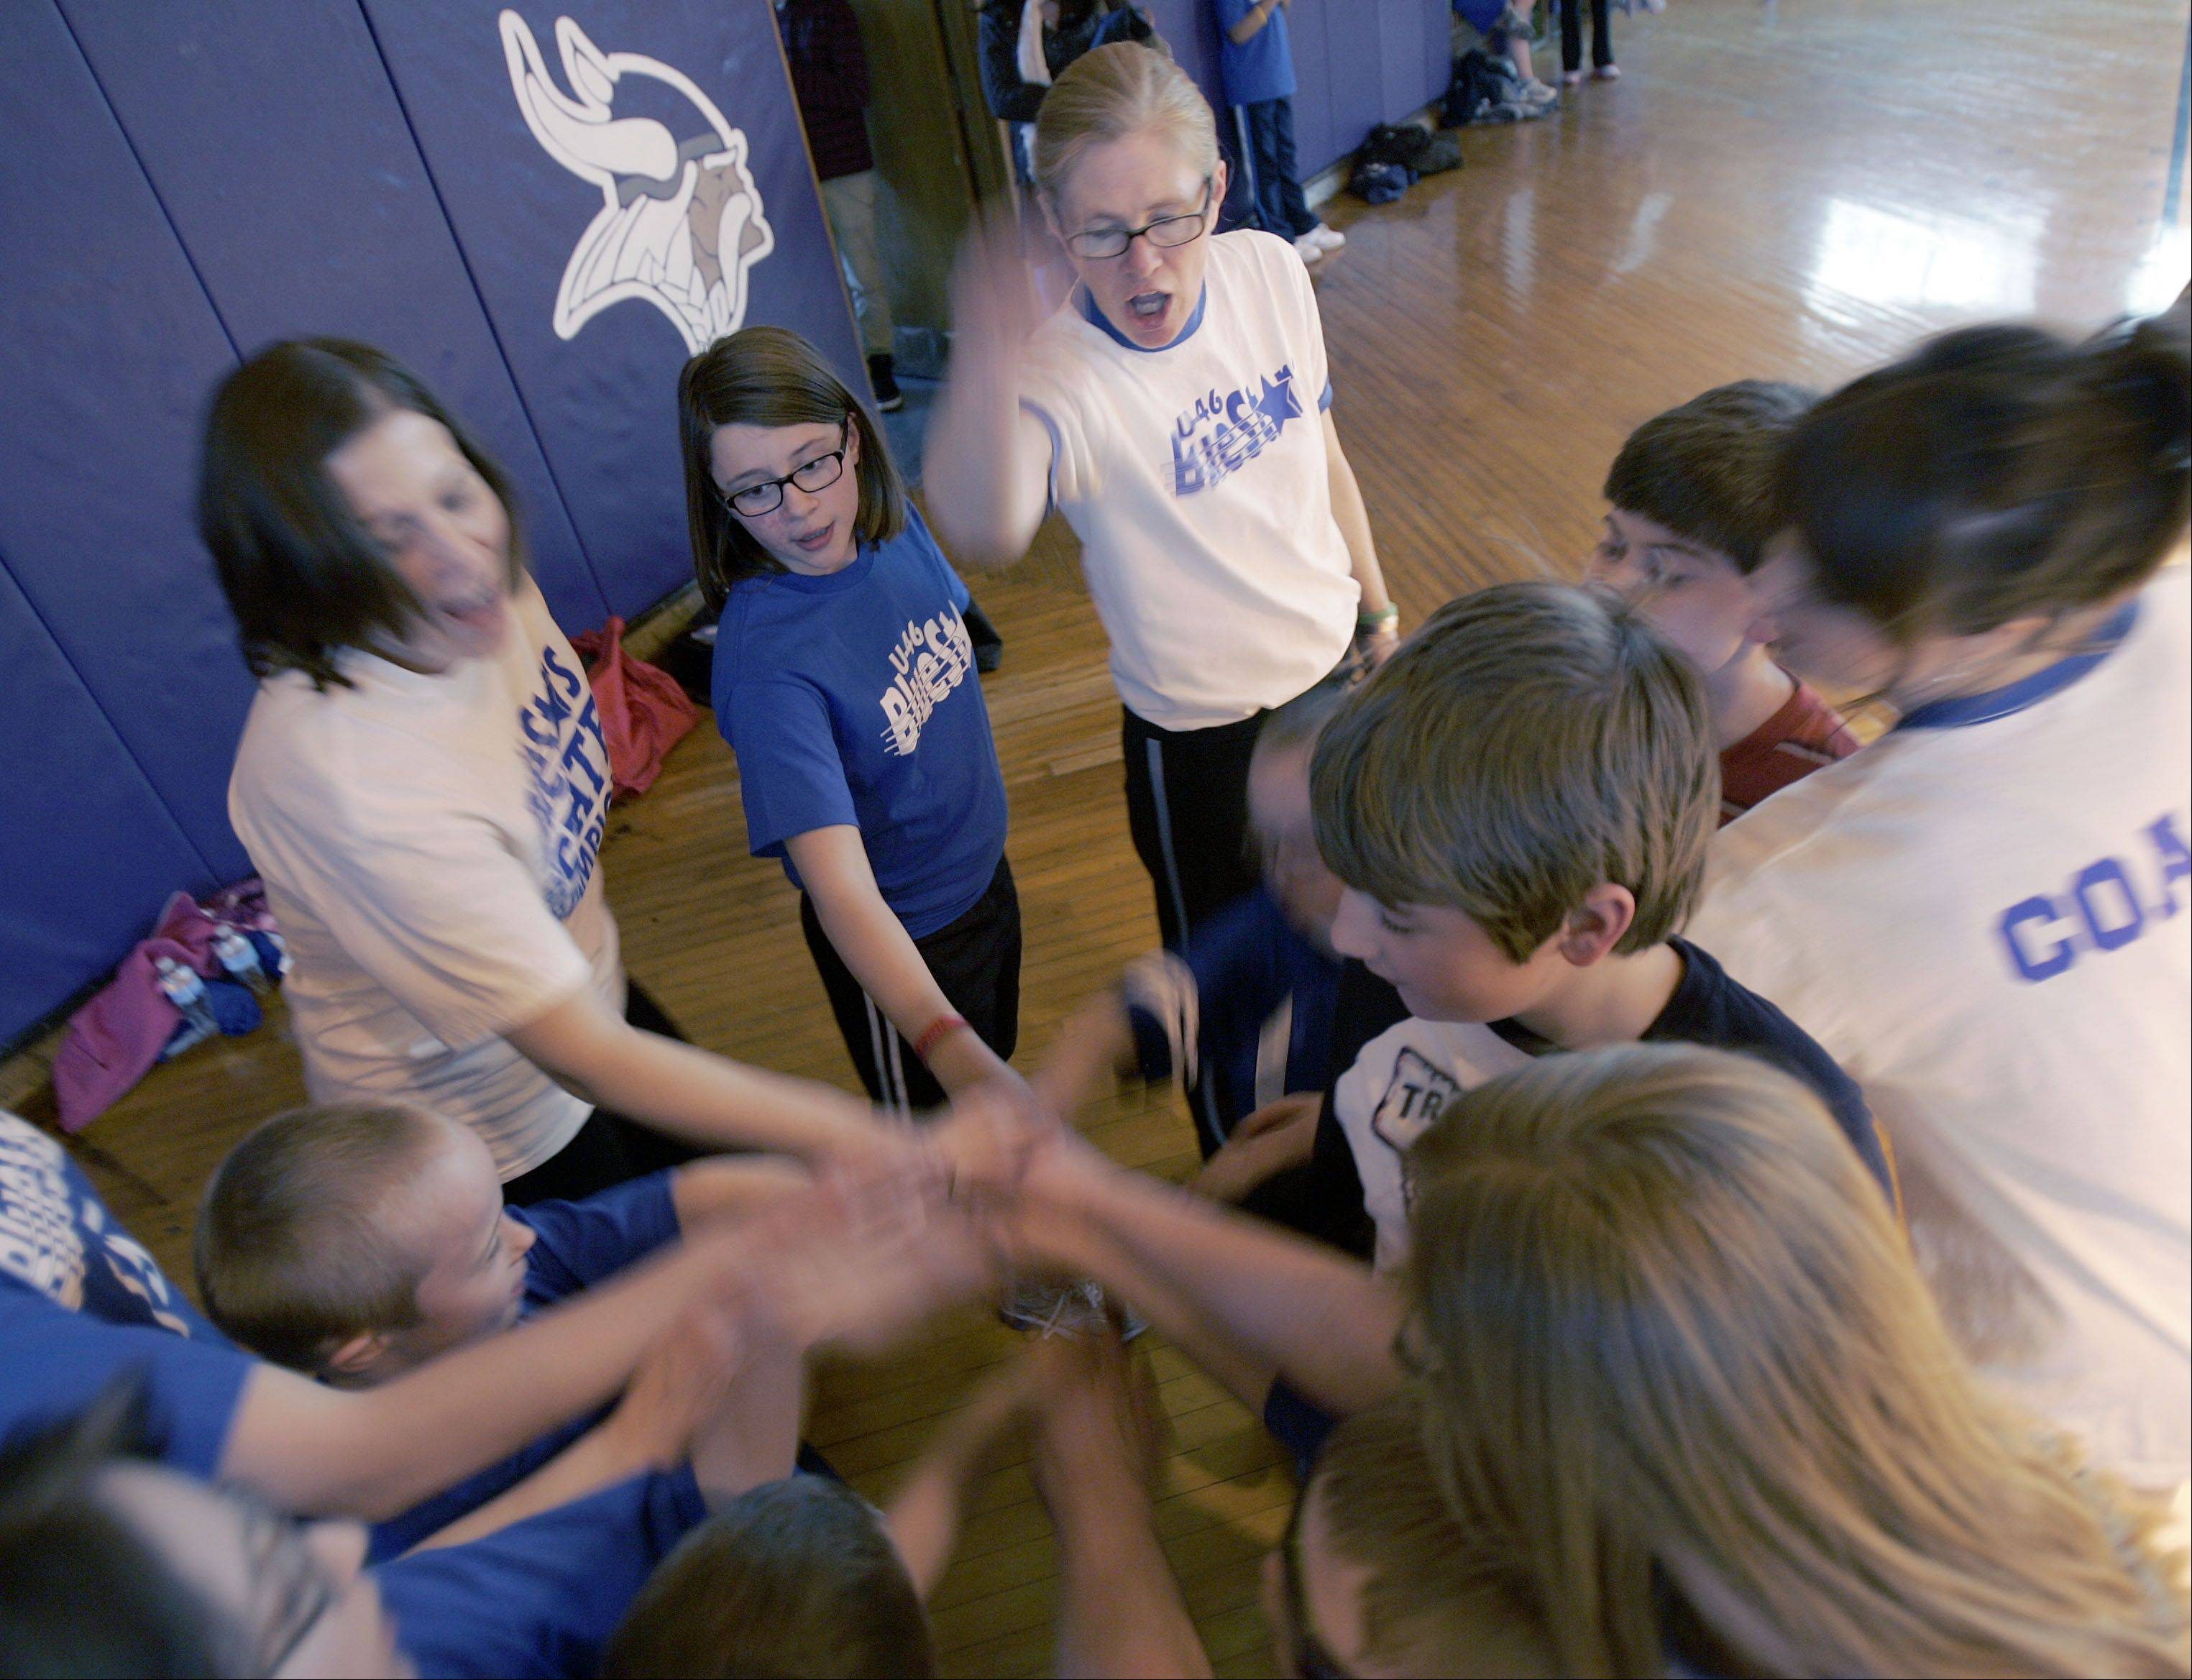 Special Olympics coordinator Maureen Lue, top center, gathers a group of her athletes as they get fired up for a BlueStars practice.